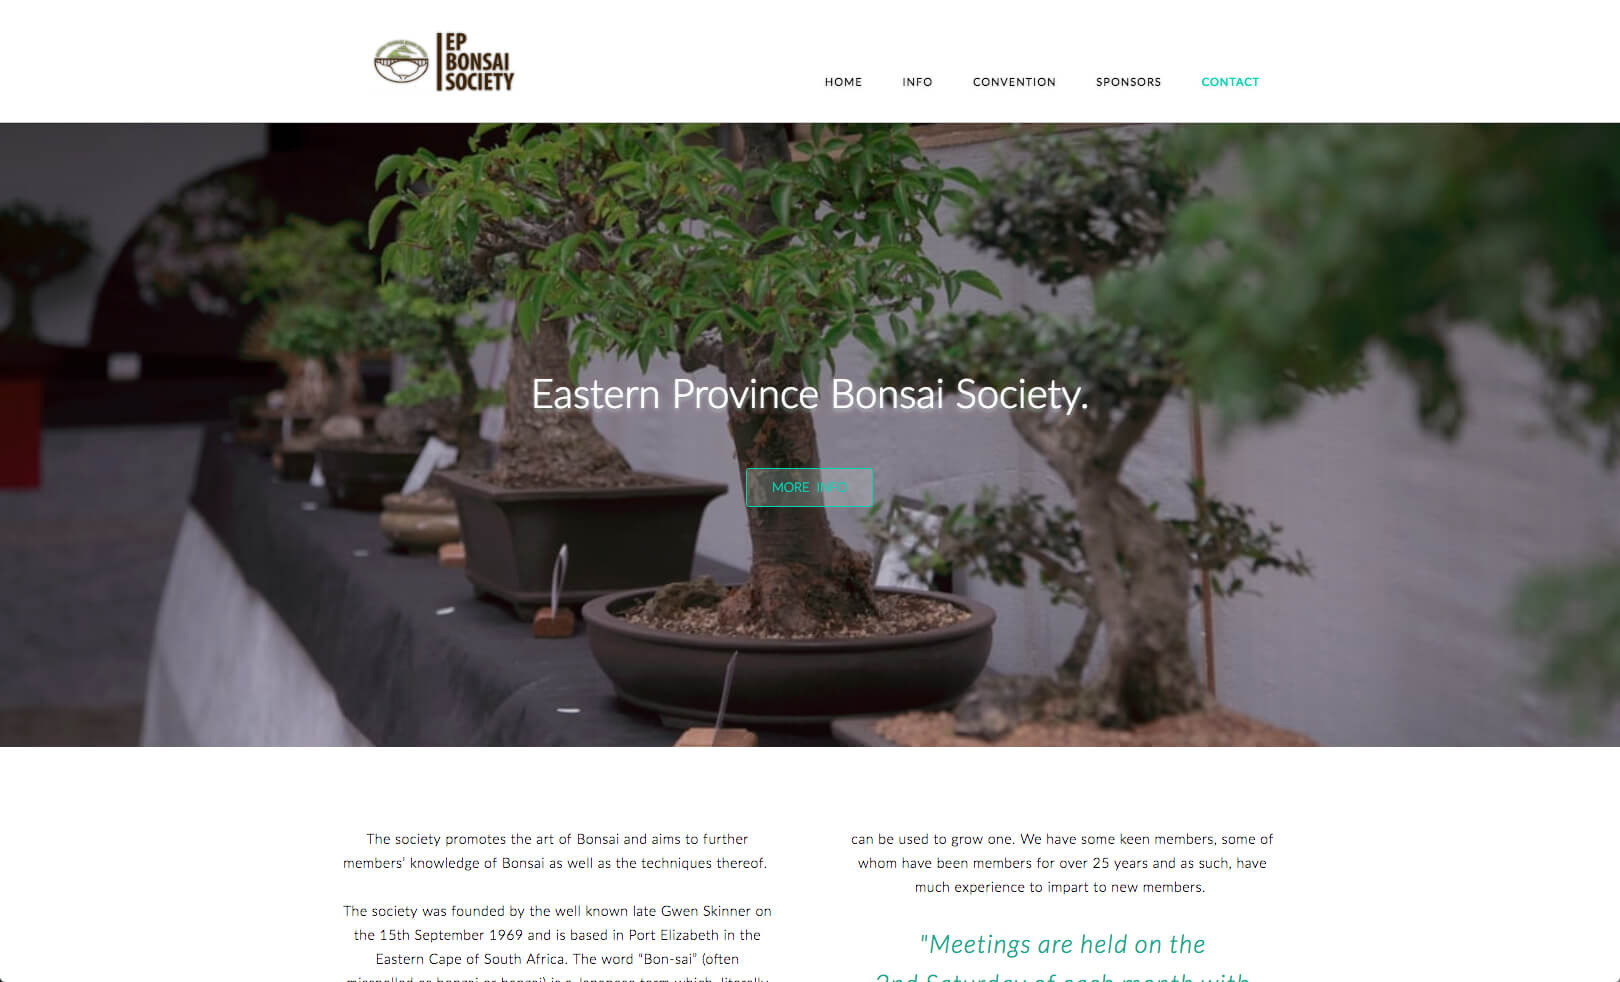 EP Bonsai Society